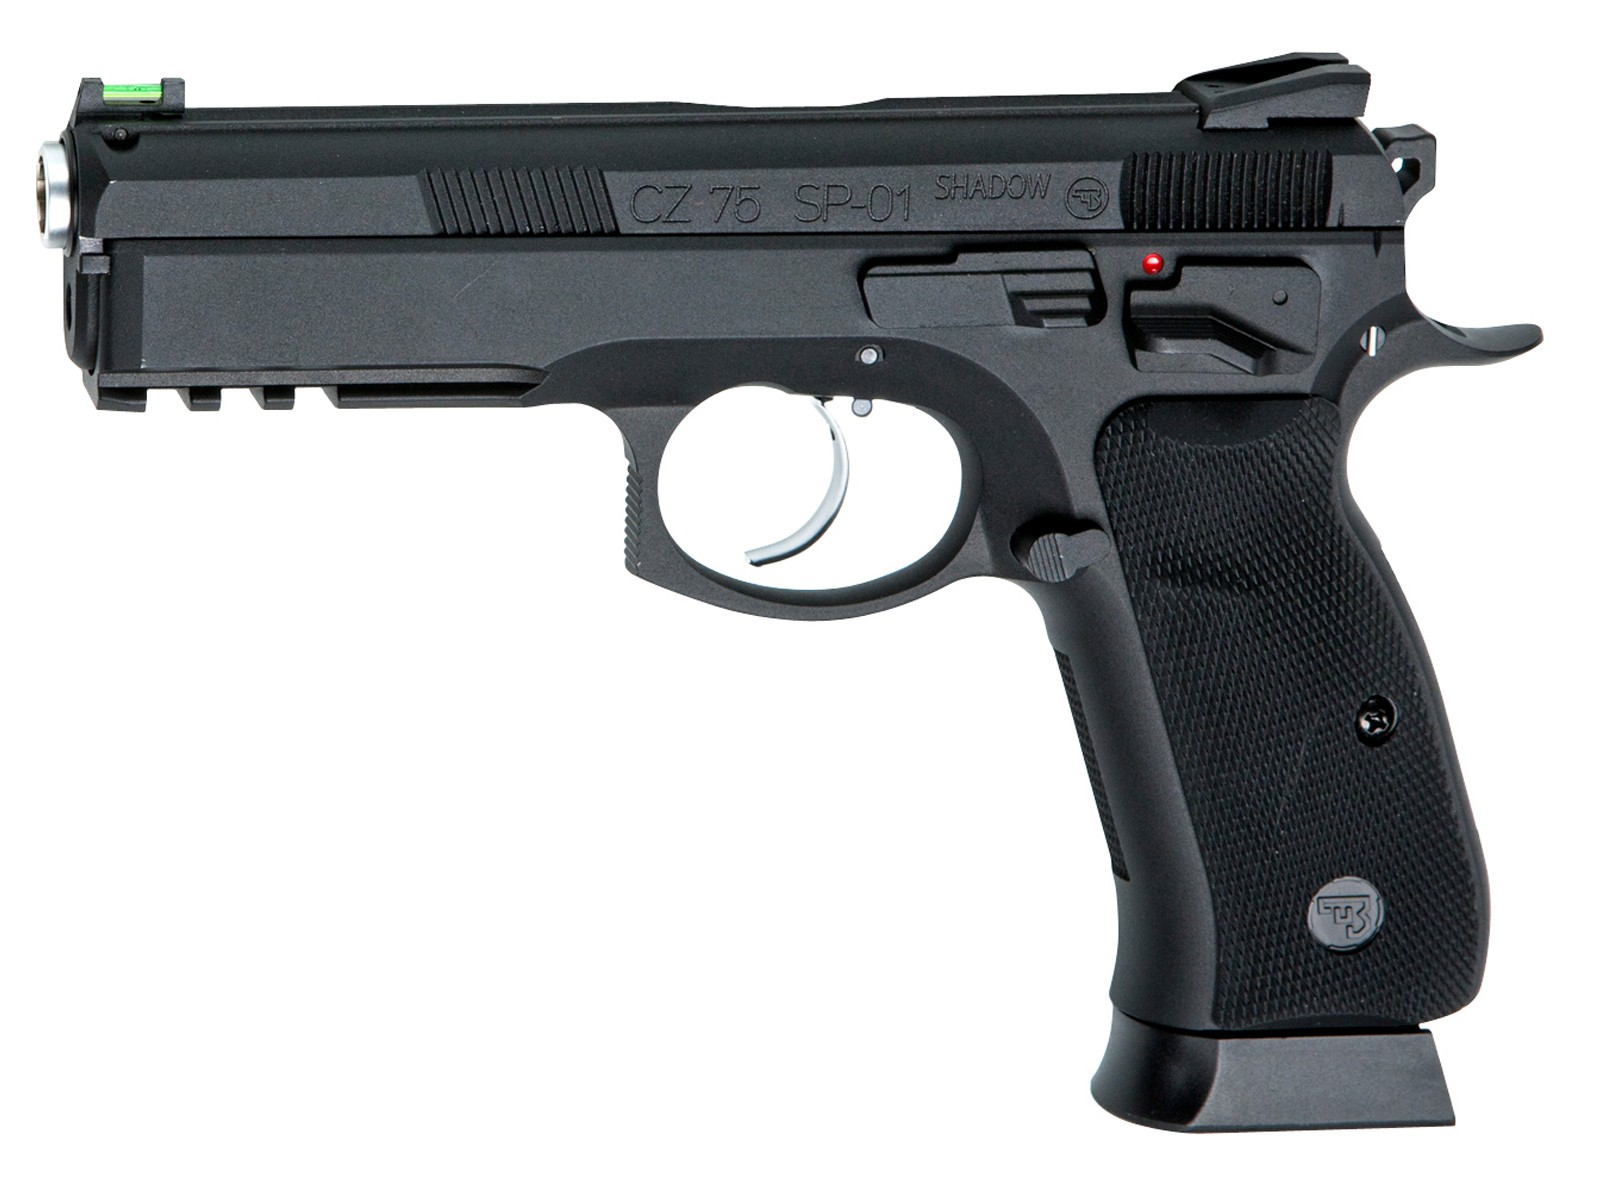 ASG CZ-75 SP-01 Shadow